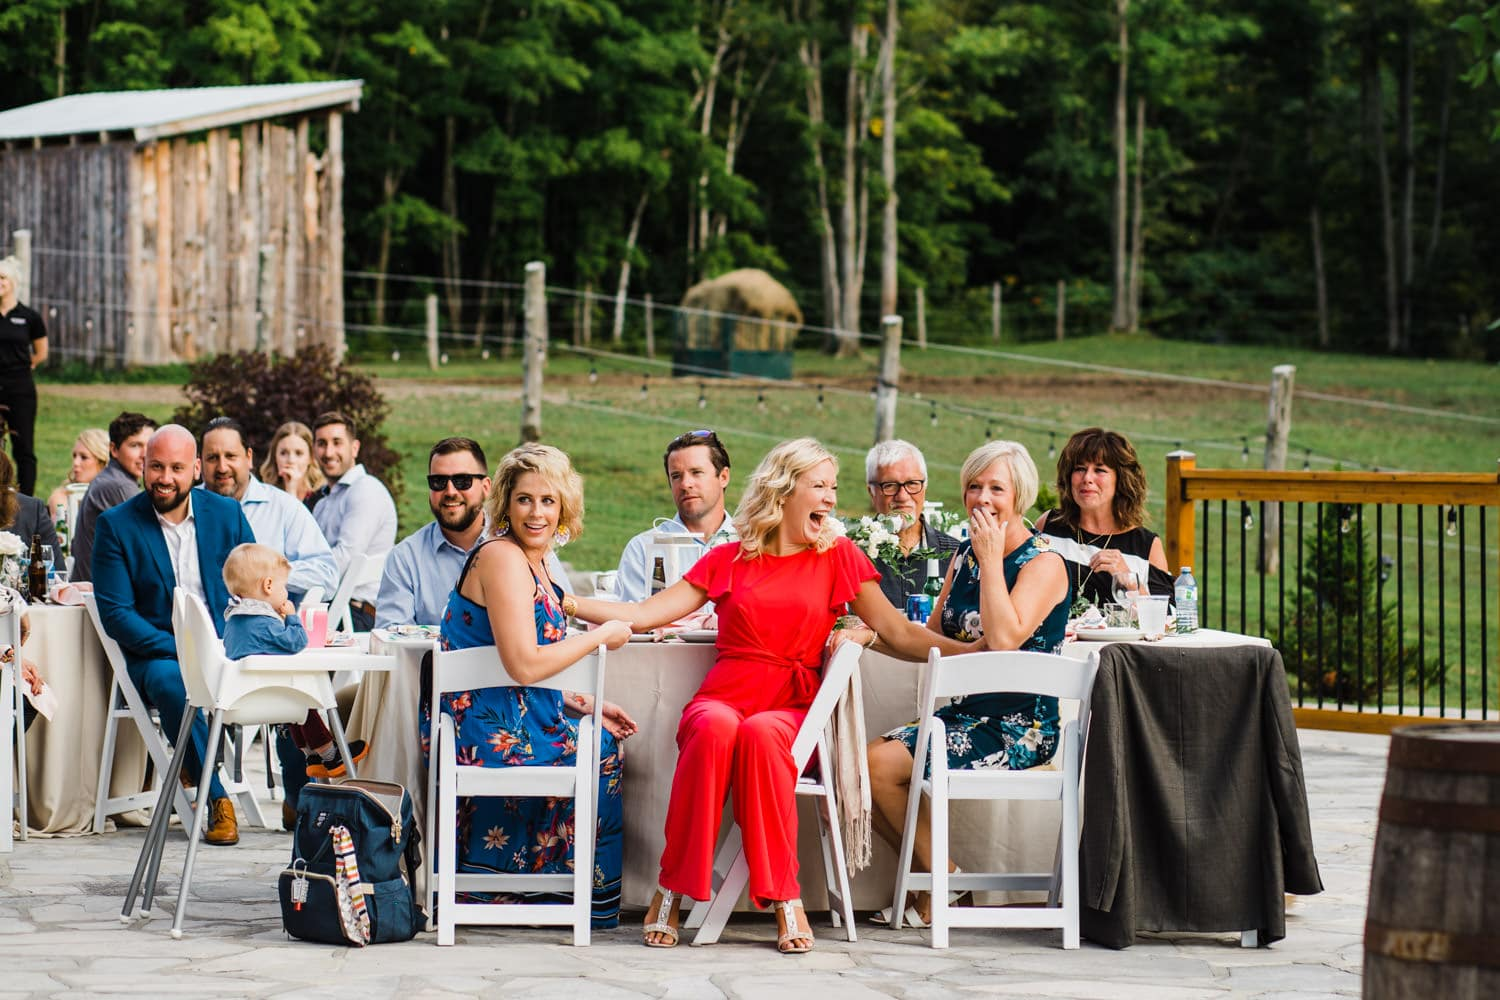 guests react to seeing bride at outdoor surprise wedding - ottawa wedding photographer